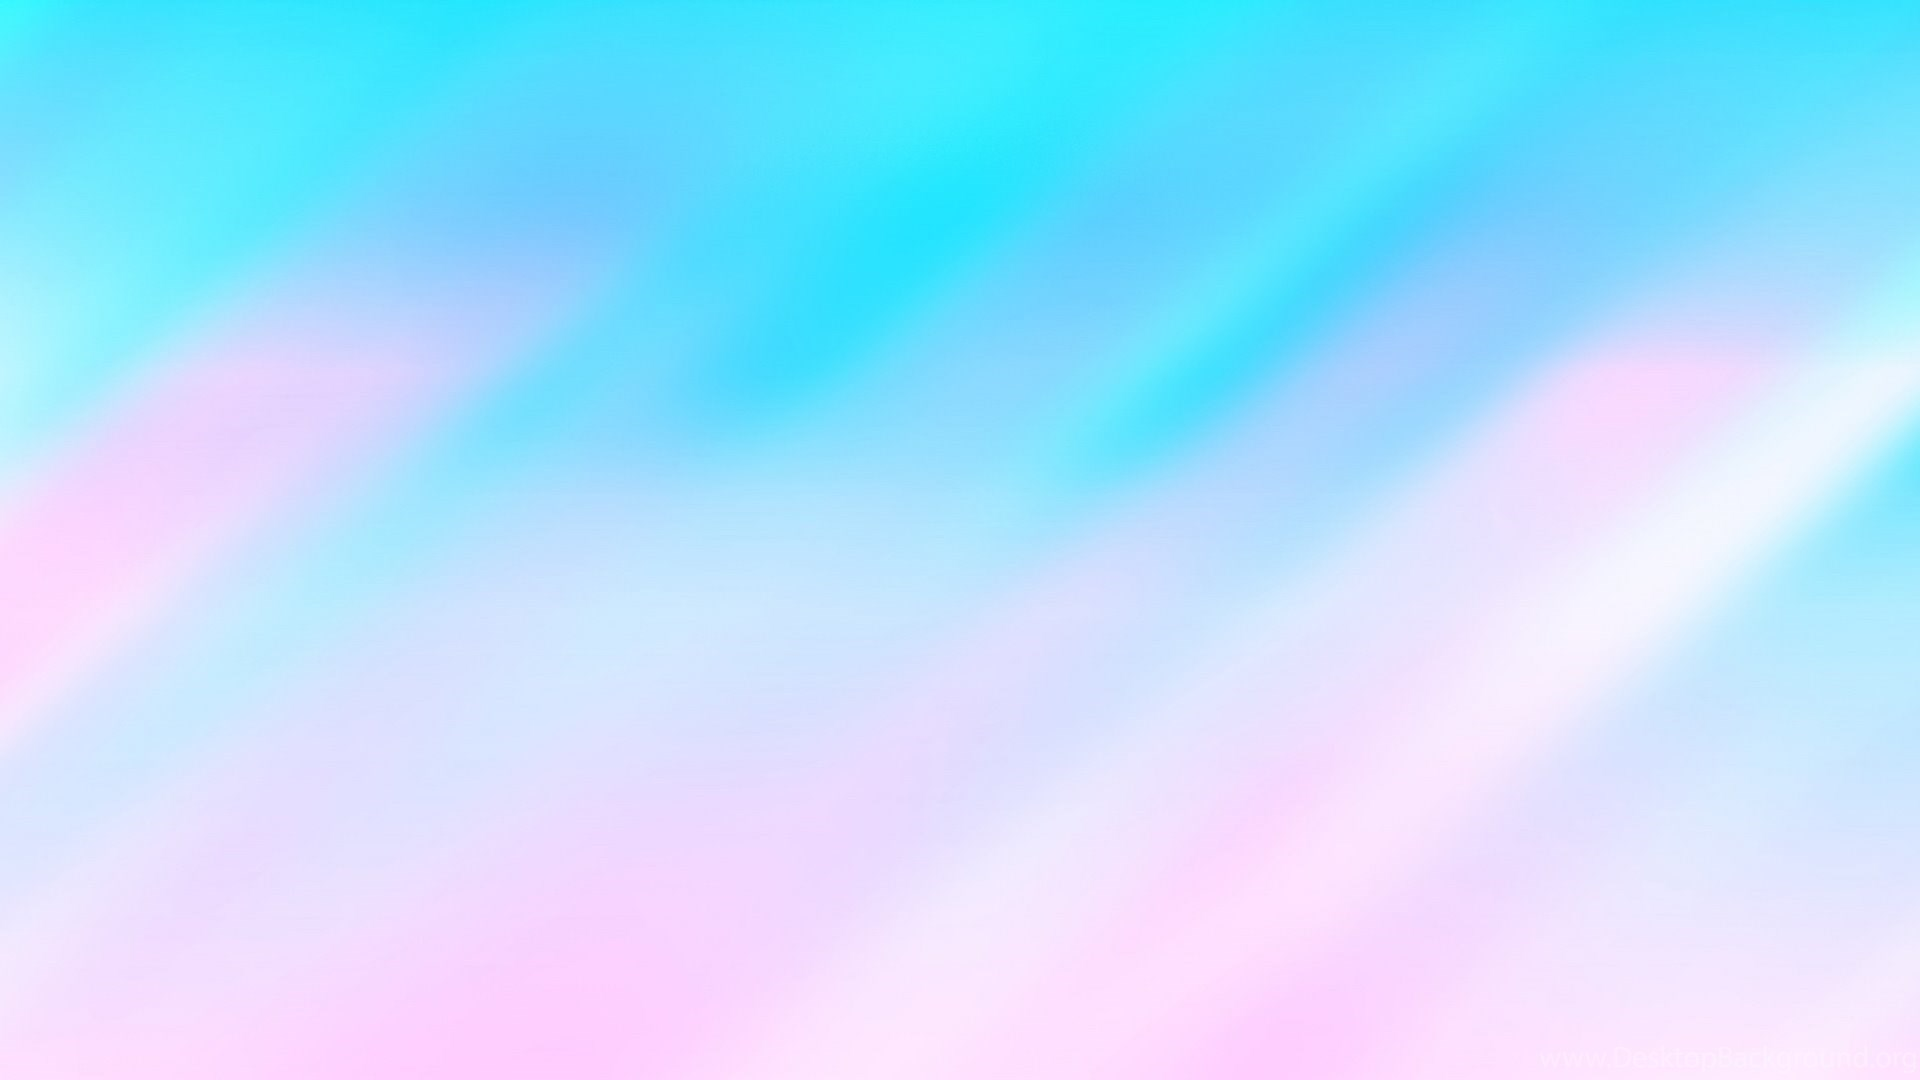 244 Pastel Hd Wallpapers Desktop Background